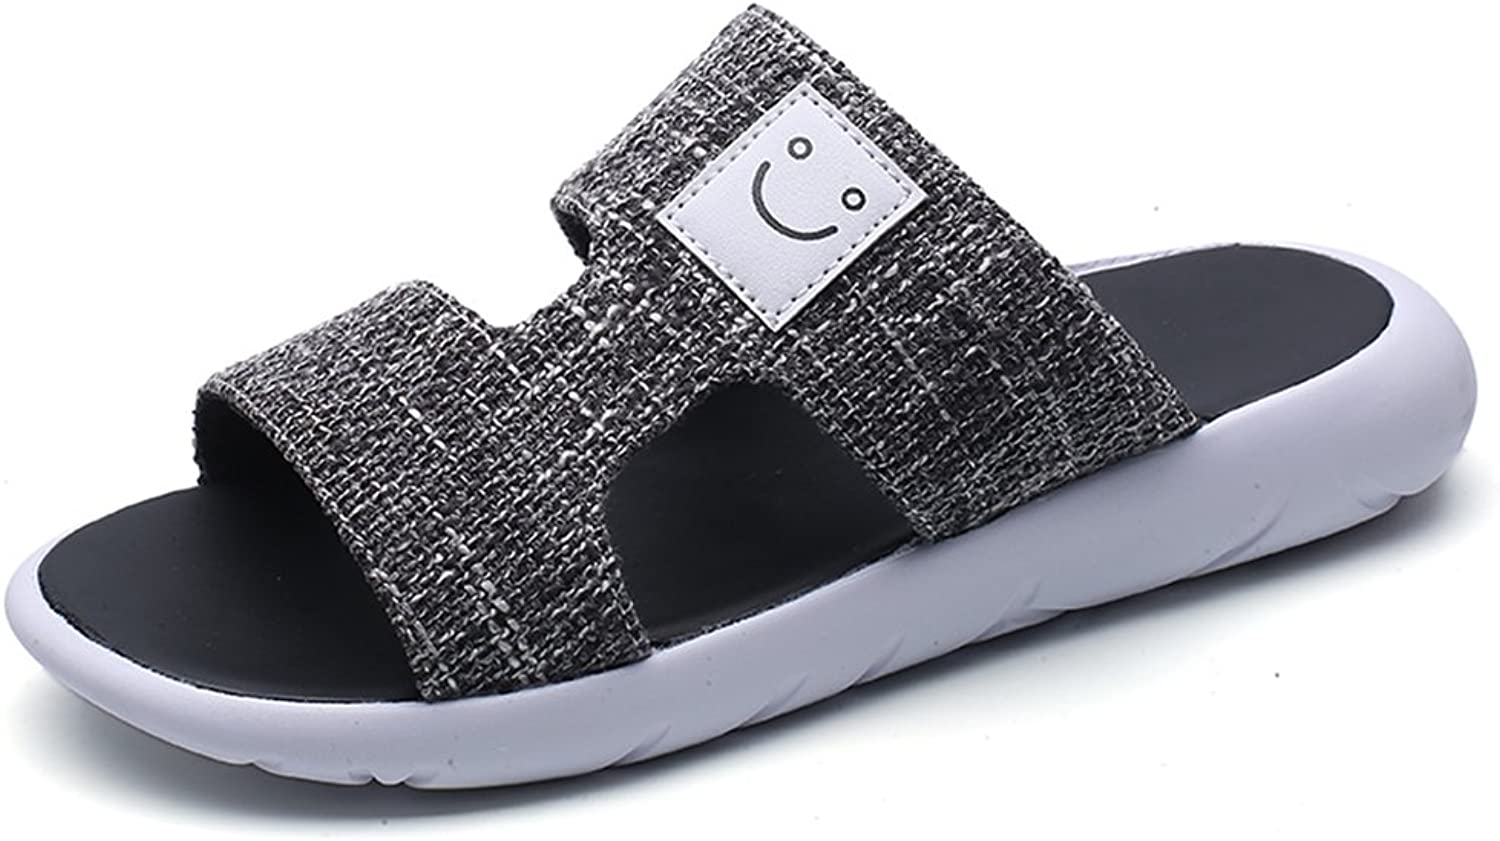 DYFYMX Fashion Casual Beach shoes, Flat Slippers, Male Adult Sandals. Fashion 1, Size   EU39 UK6 CN39